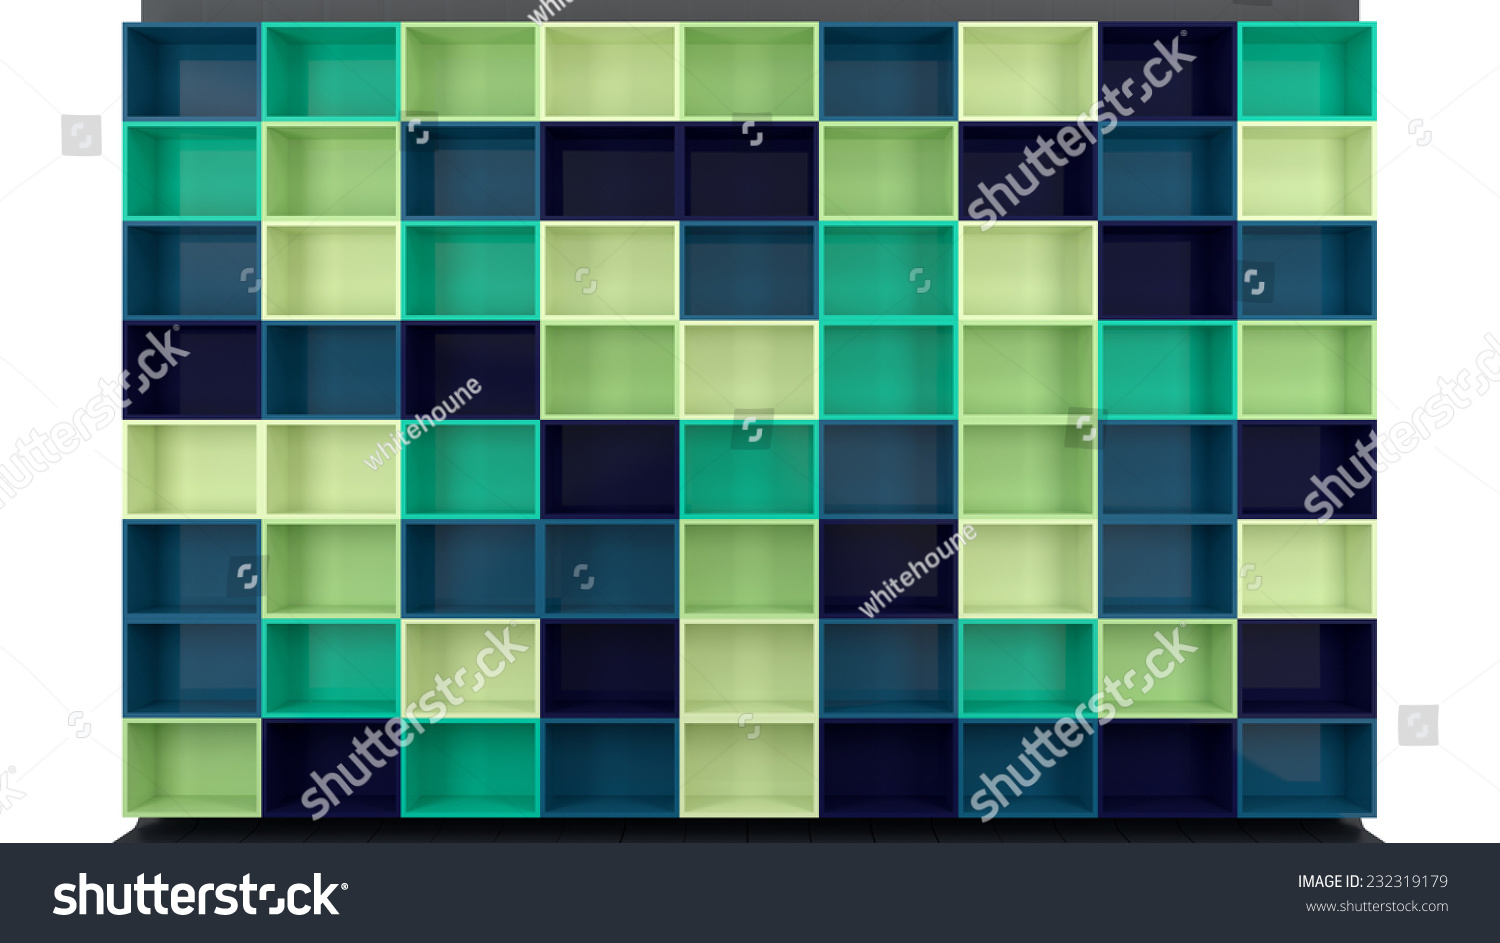 architectural background empty colorful shelves different